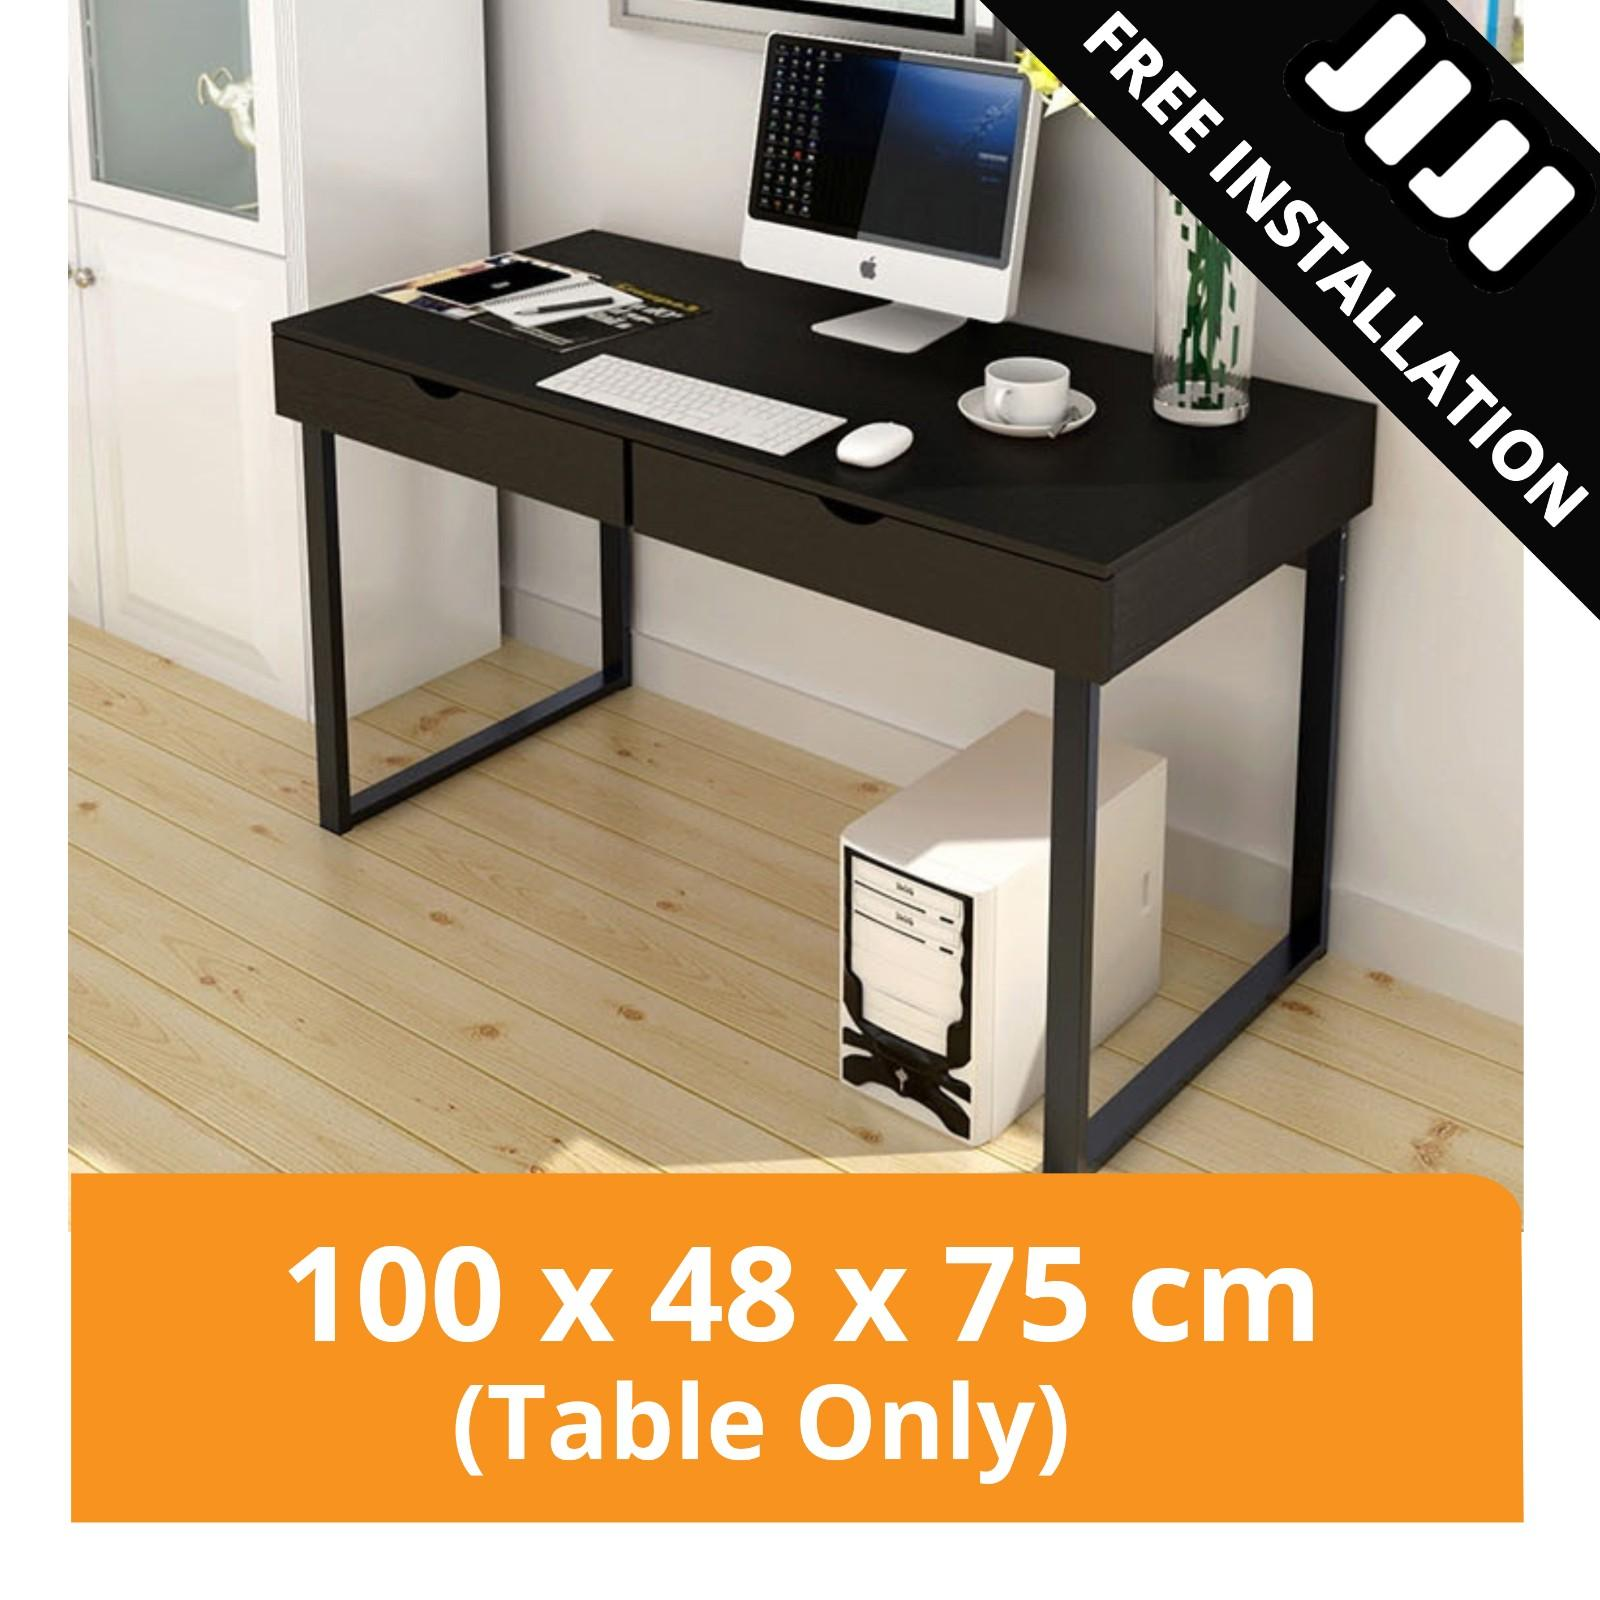 JIJI Computer Table Series: Escritor Desktop Table with Cabinets (Free Installation) - Home Office / Furniture / Office Desks (SG)